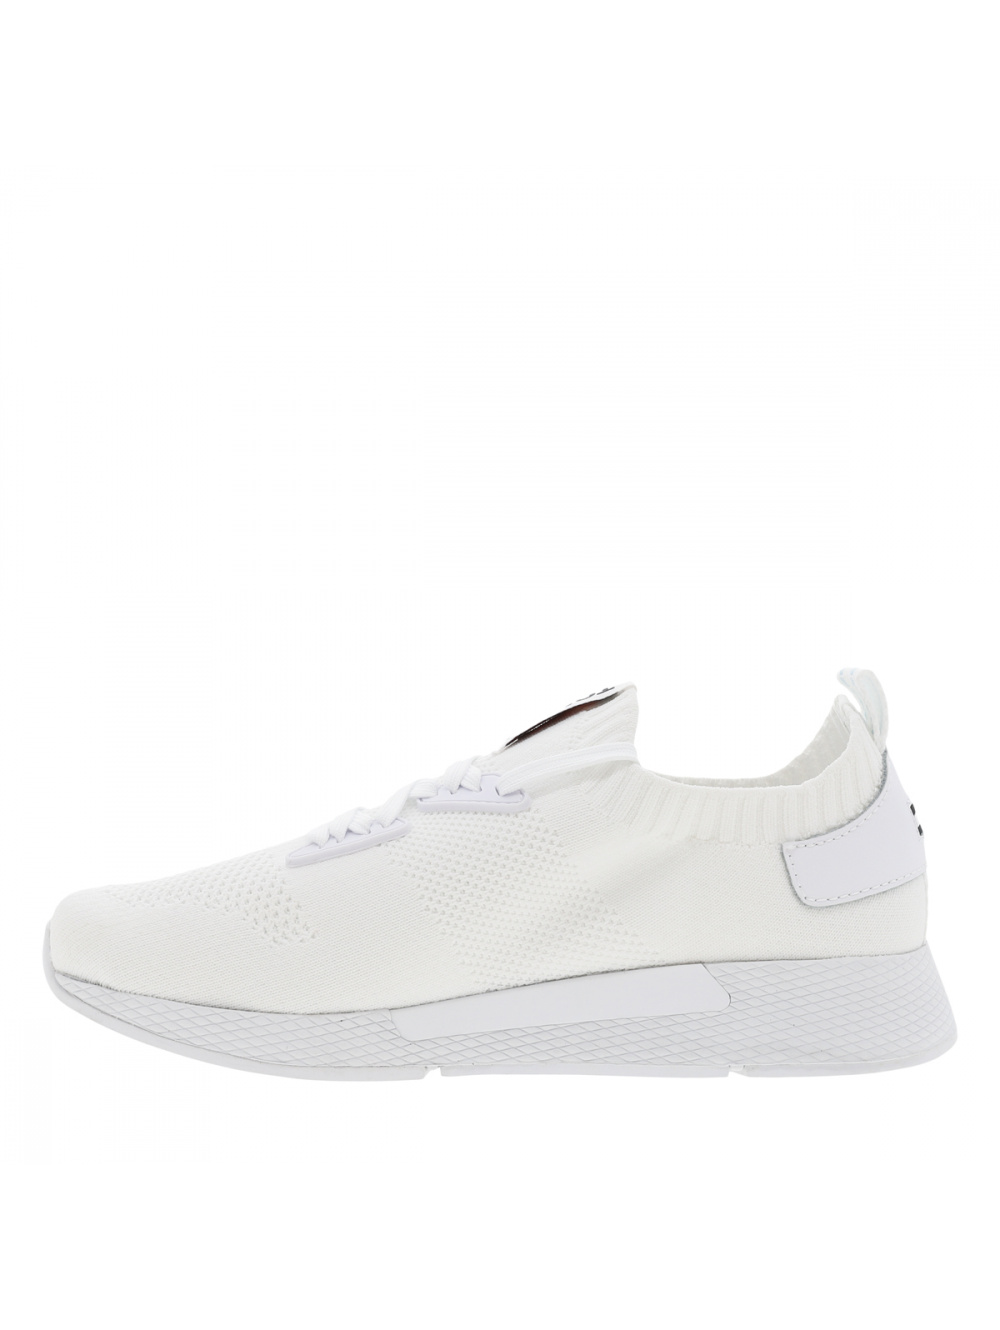 Baskets basses blanches de style sportif TOMMY JEANS